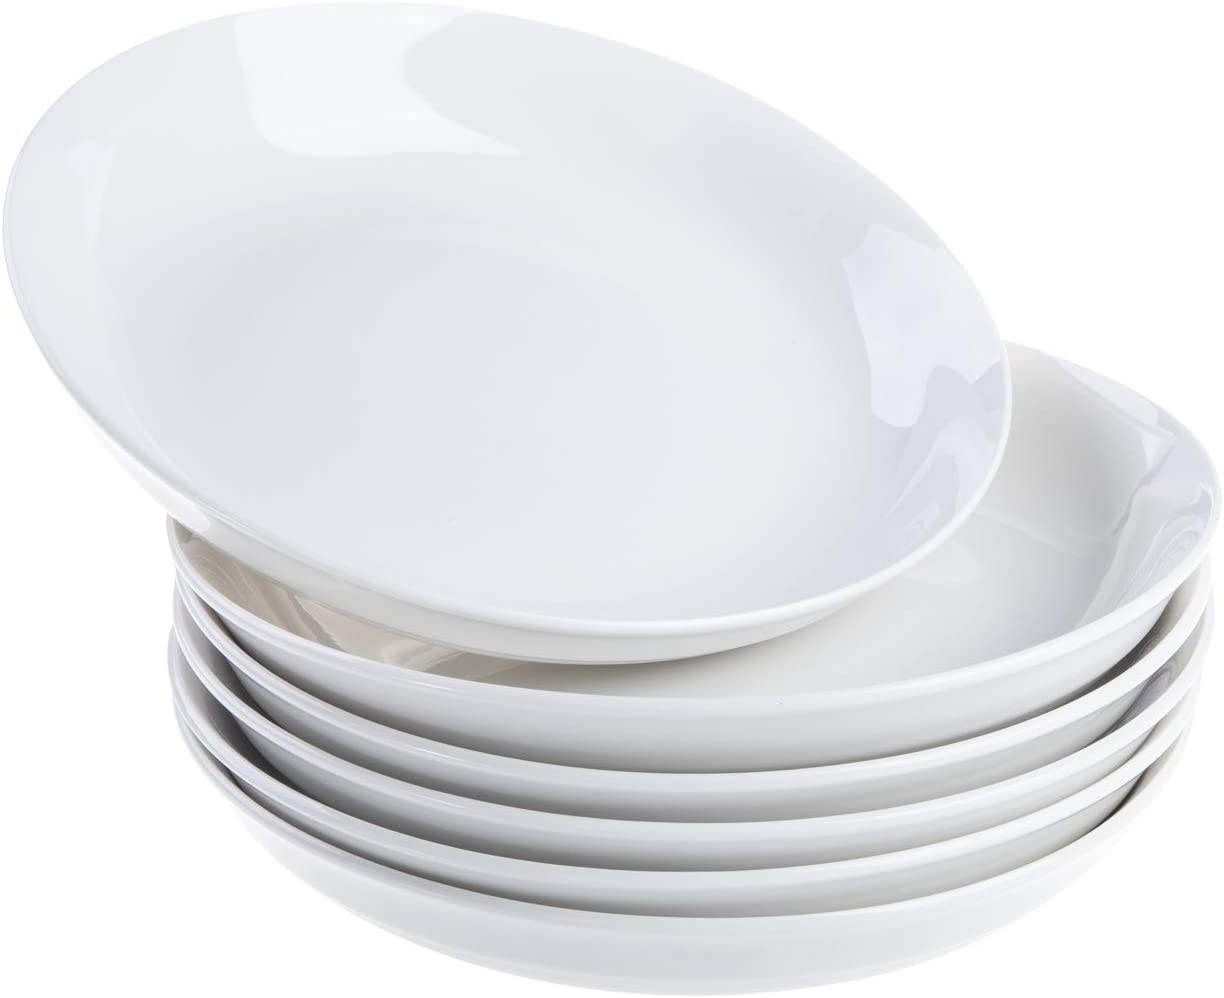 Cutiset 8 Inch Porcelain Salad/Pasta/Fruit Plates, 24 Ounce, Set of 6, White, Shallow & Wide (8-inch/24 ounce, Round)